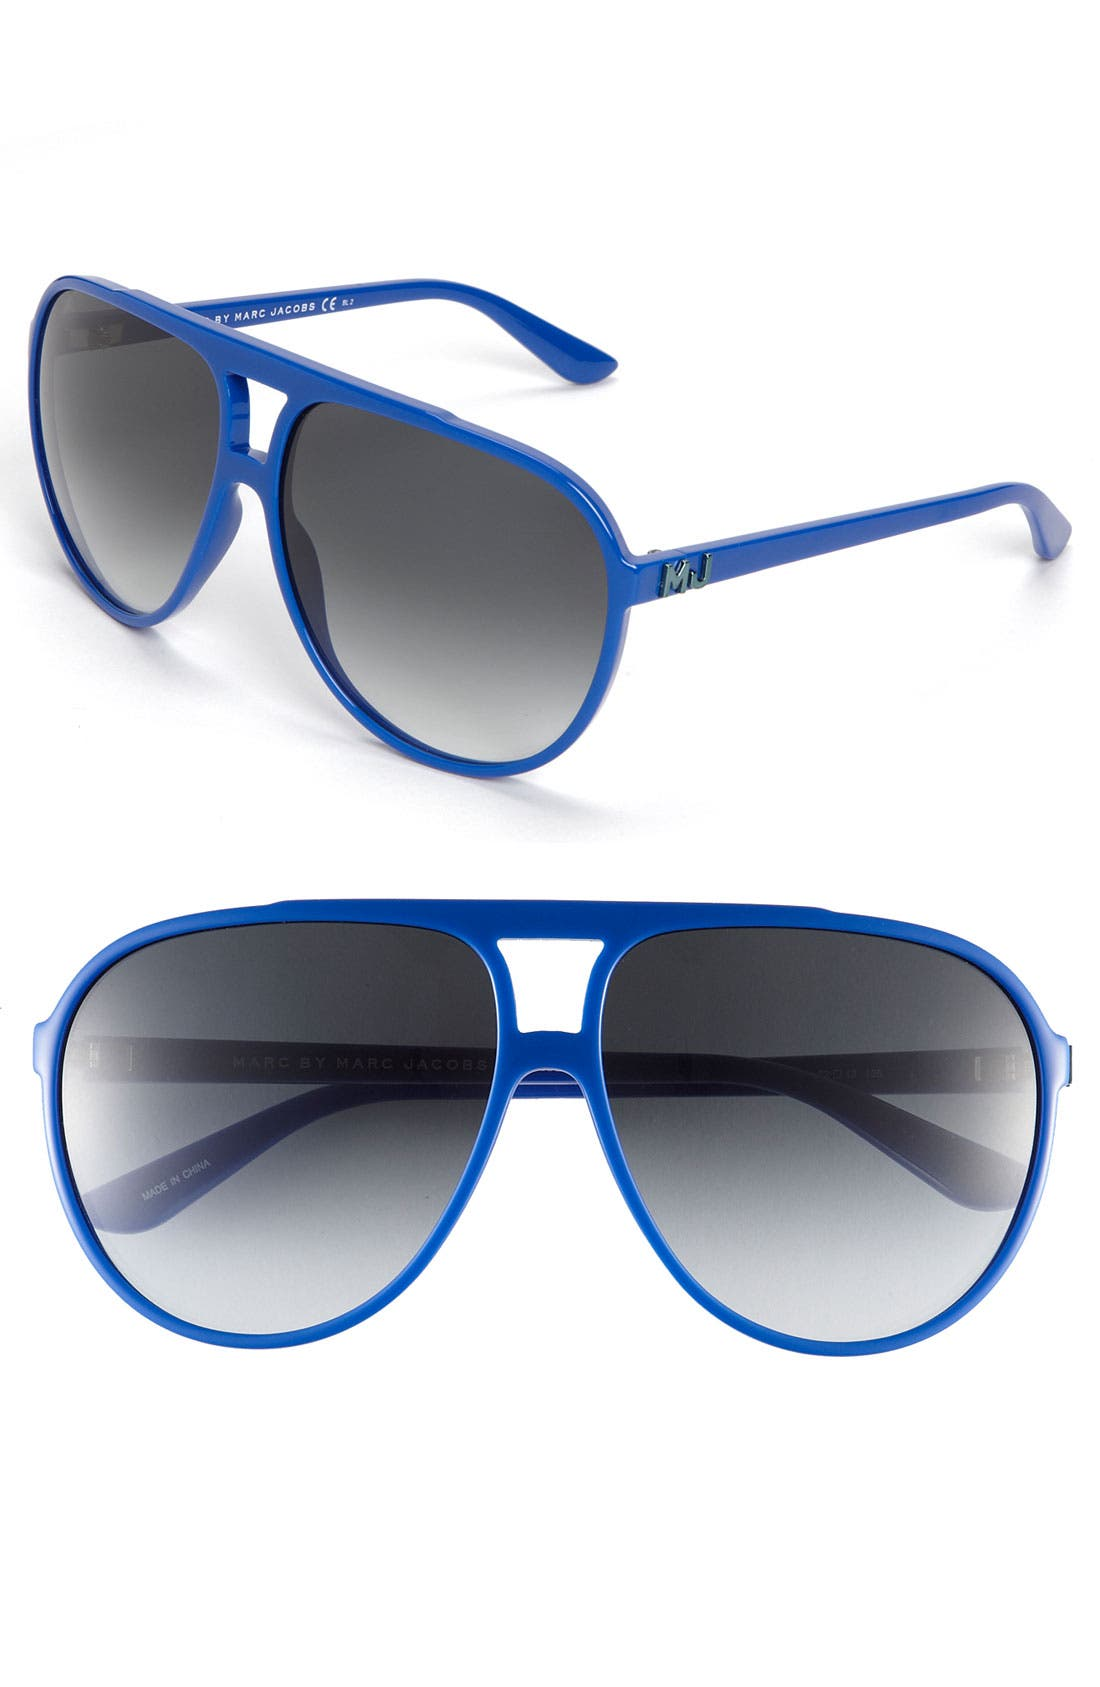 Main Image - MARC BY MARC JACOBS Aviator Sunglasses